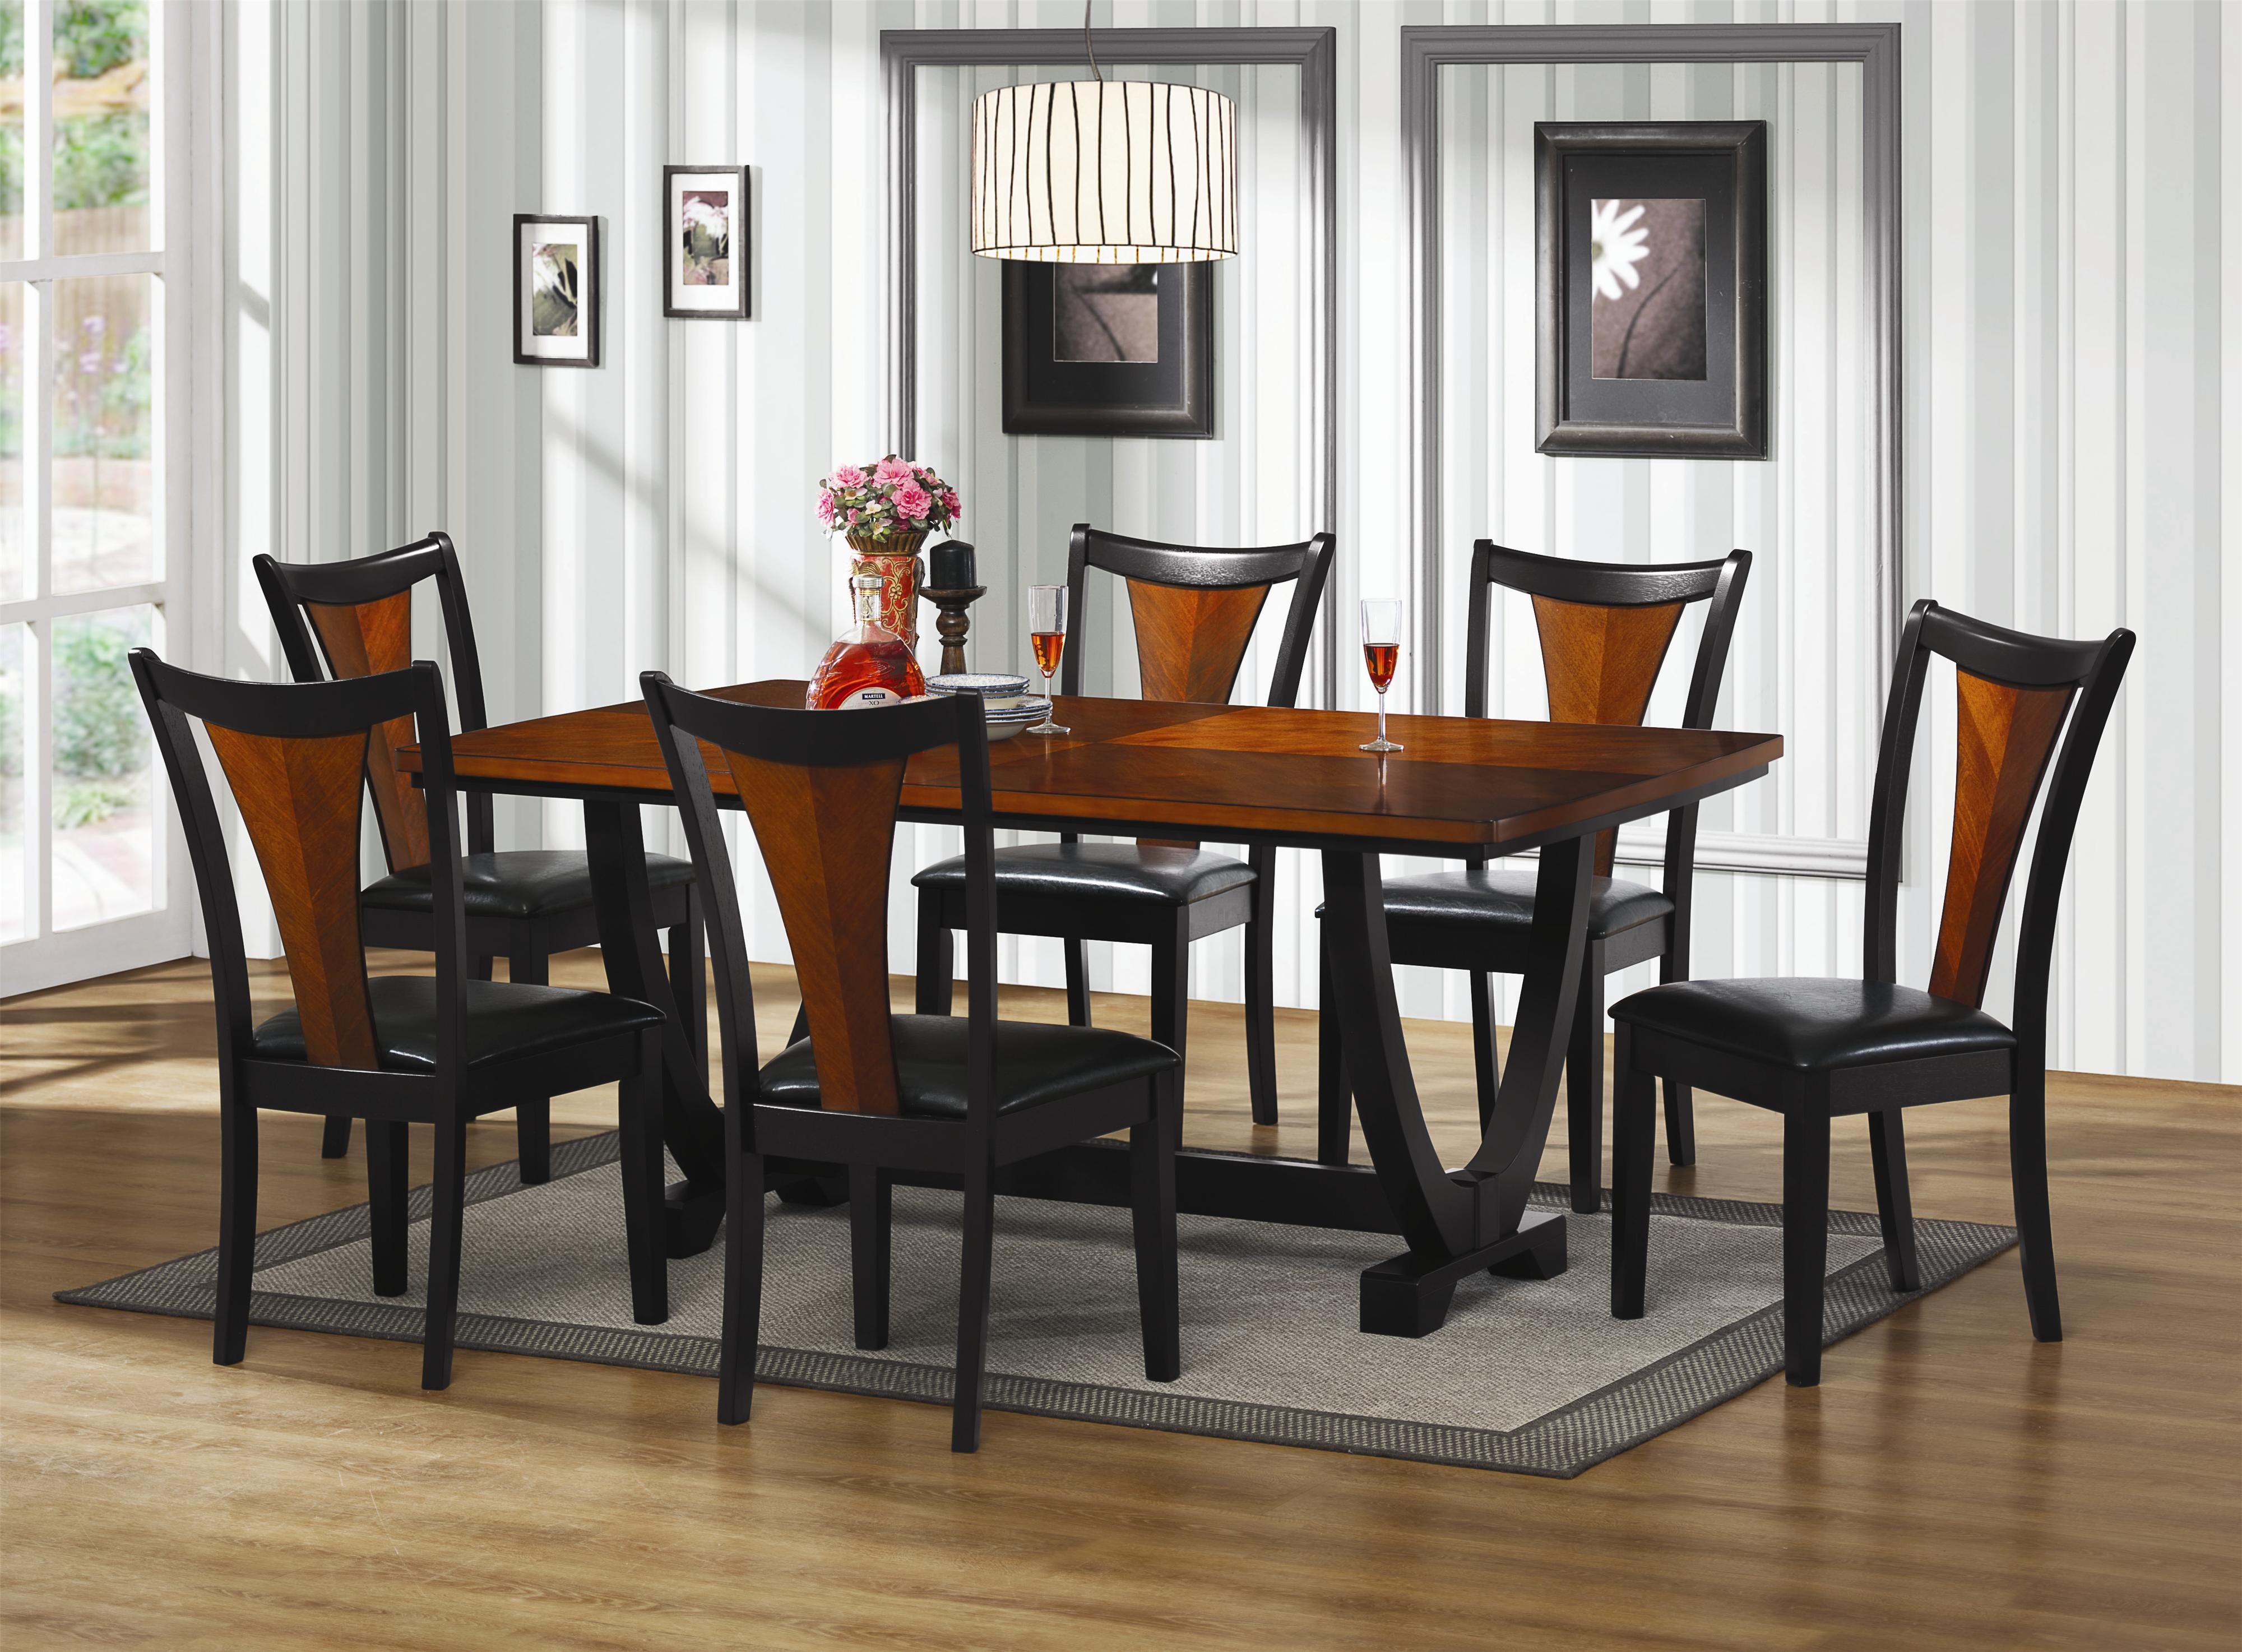 Coaster Boyer 5 Piece Table and Chair Set Value City Furniture